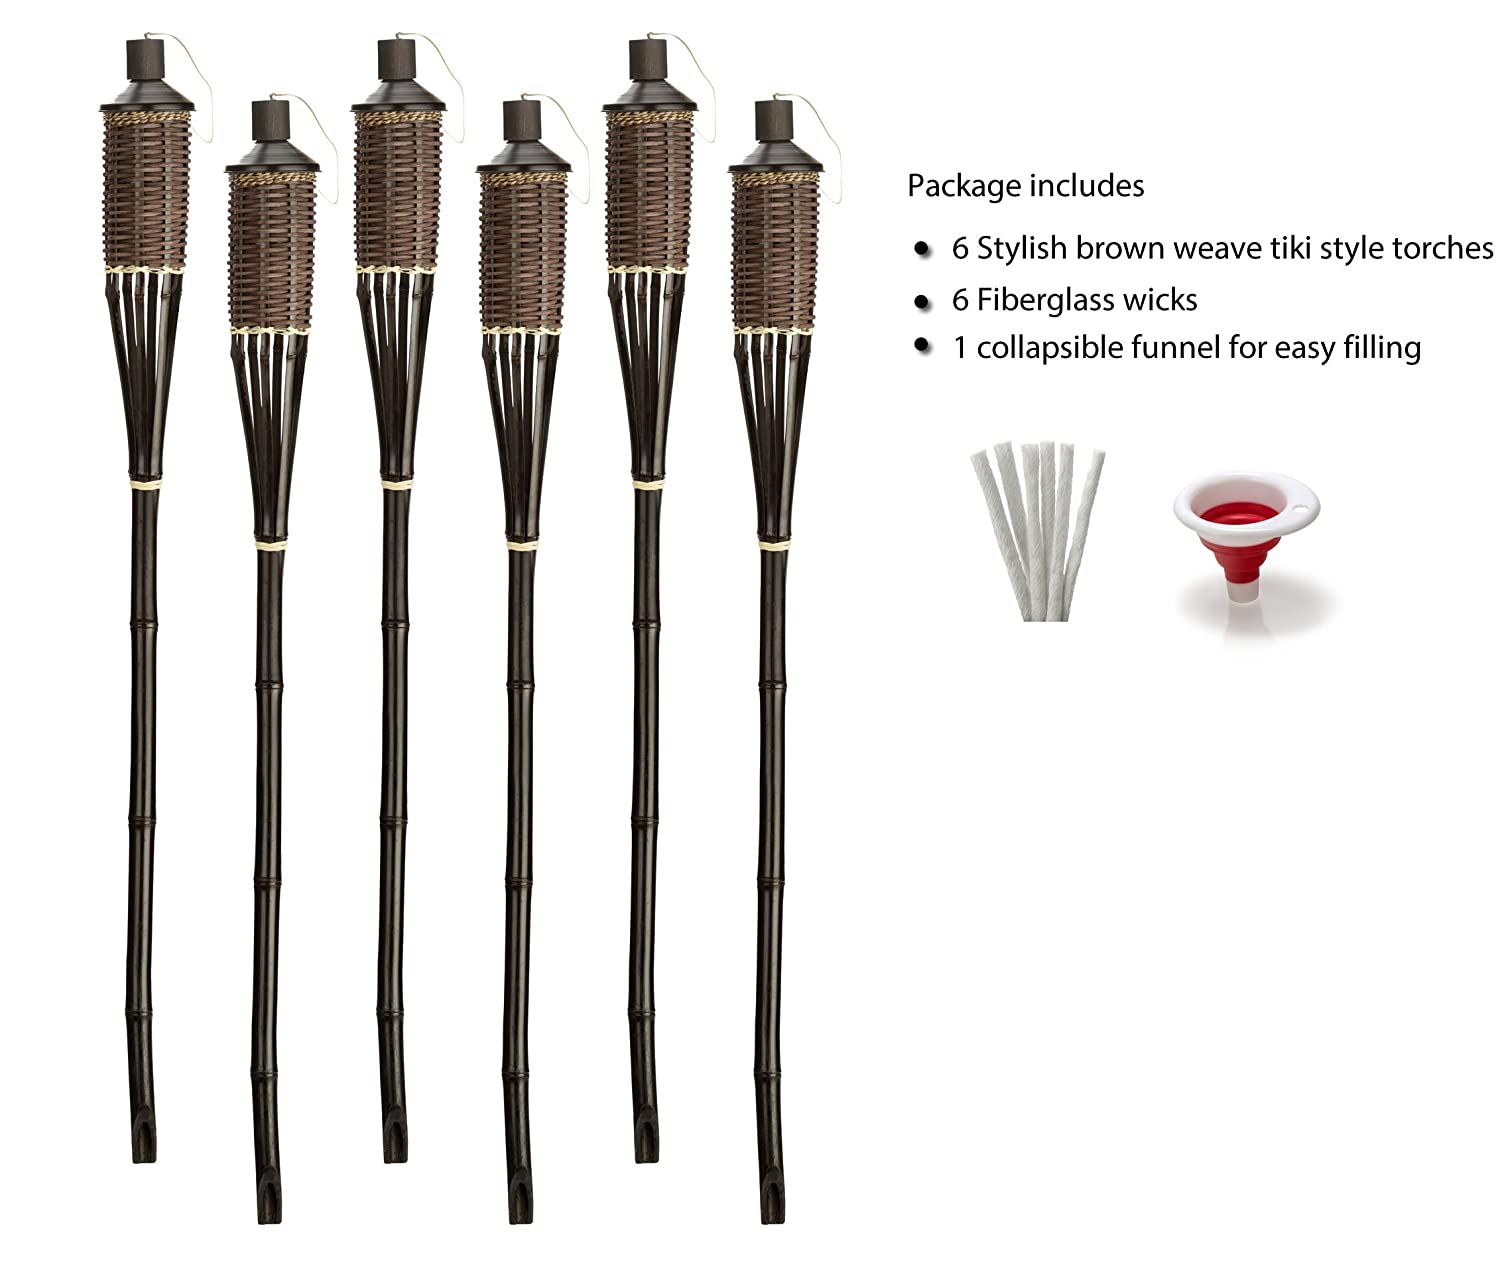 EZ Pour Funnel Included 6 Pack Metal Canisters for Longer Lasting Burn Extra-Large Decorative Torches with Fiberglass Wicks Style Bamboo Torches Stands 59 Tall 16 ounces